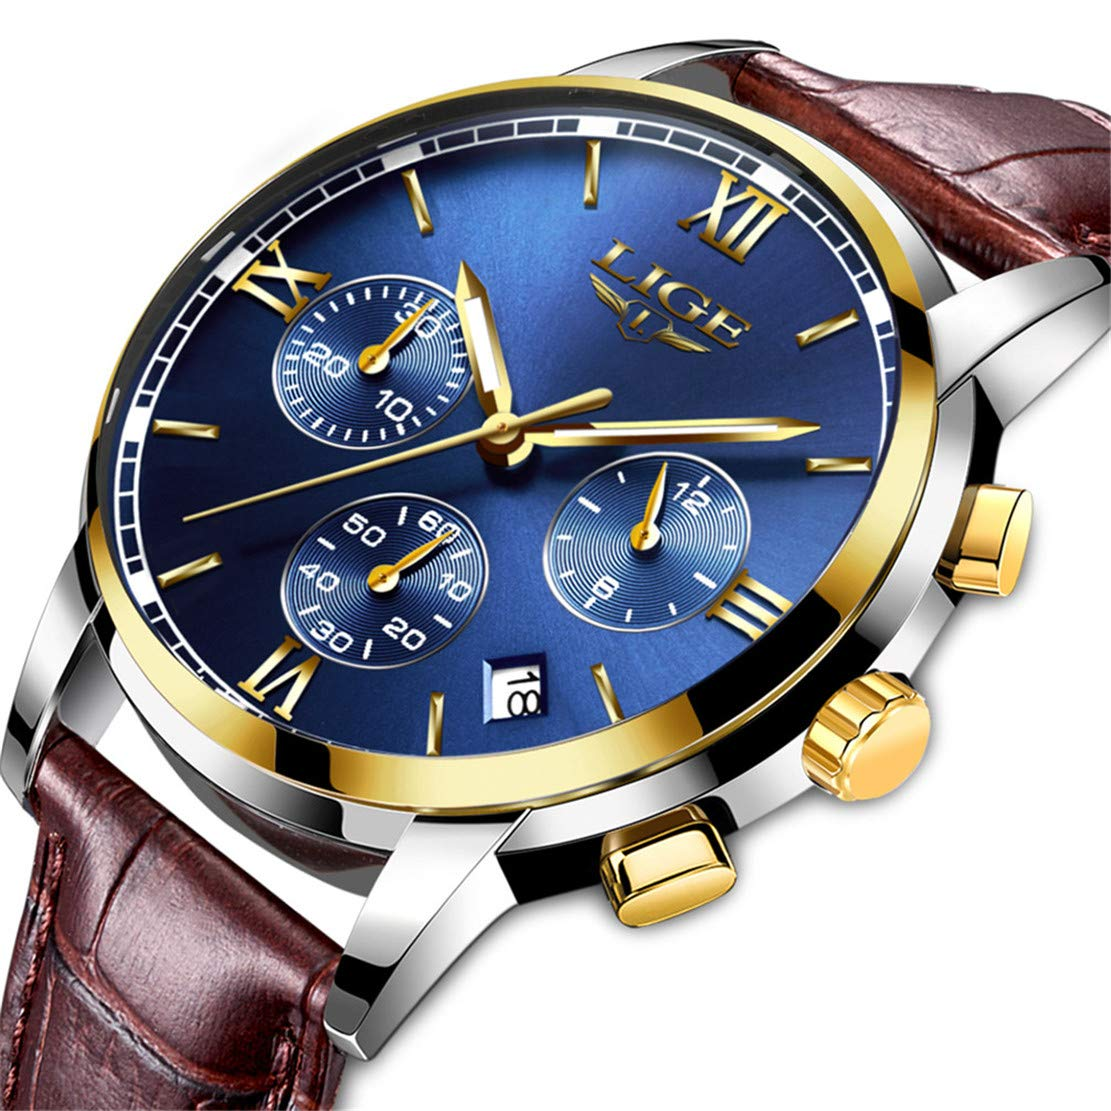 cde7d8d1 Men's Luxury Business Quartz Watch, LIGE Fashion Analog Chronograph Wrist  Watch with Brown Leather Band…